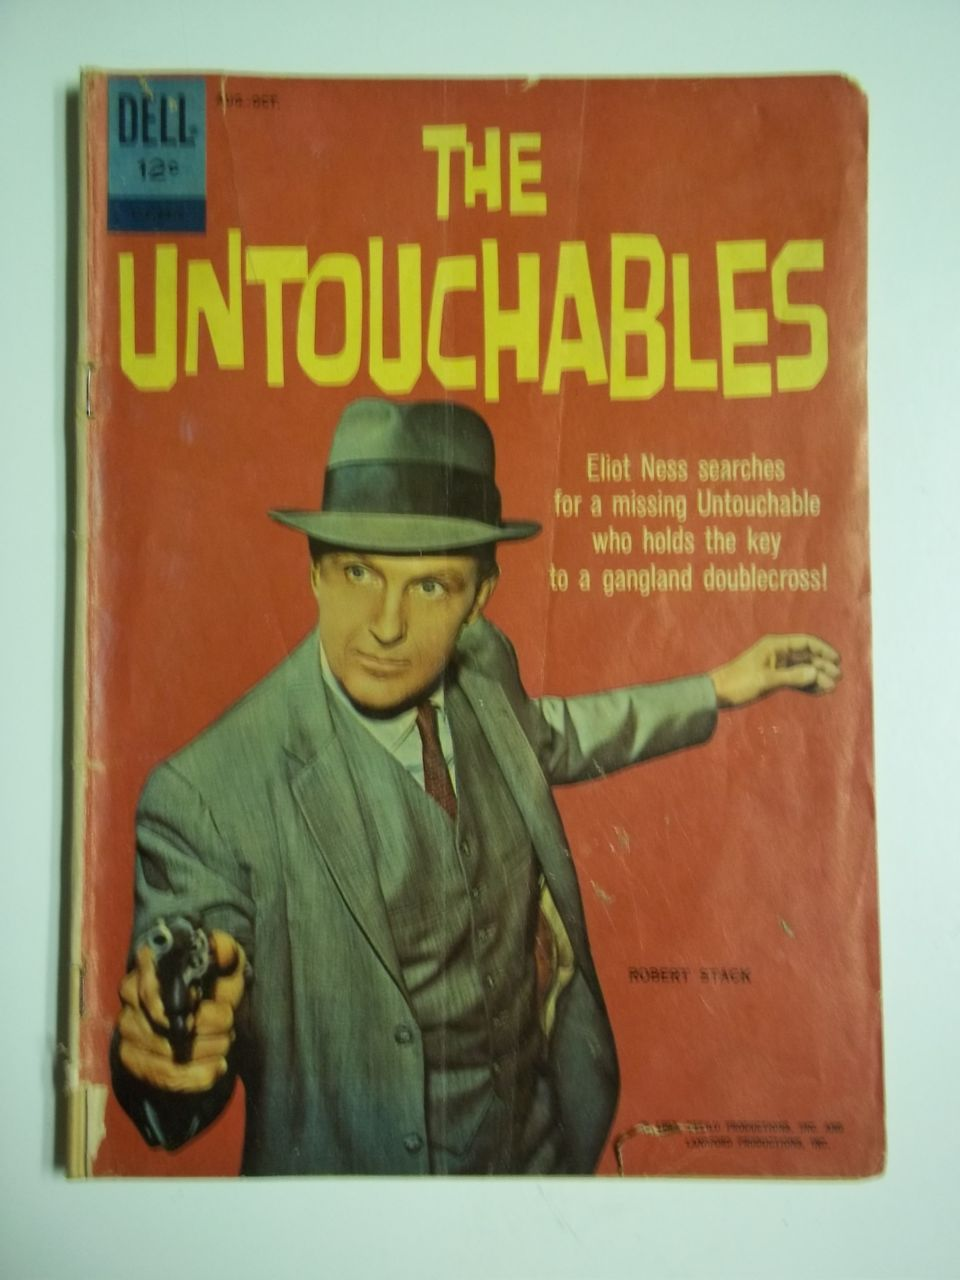 RARE! Dell Comics The Untouchables No. 01-879-210, Aug. 1962